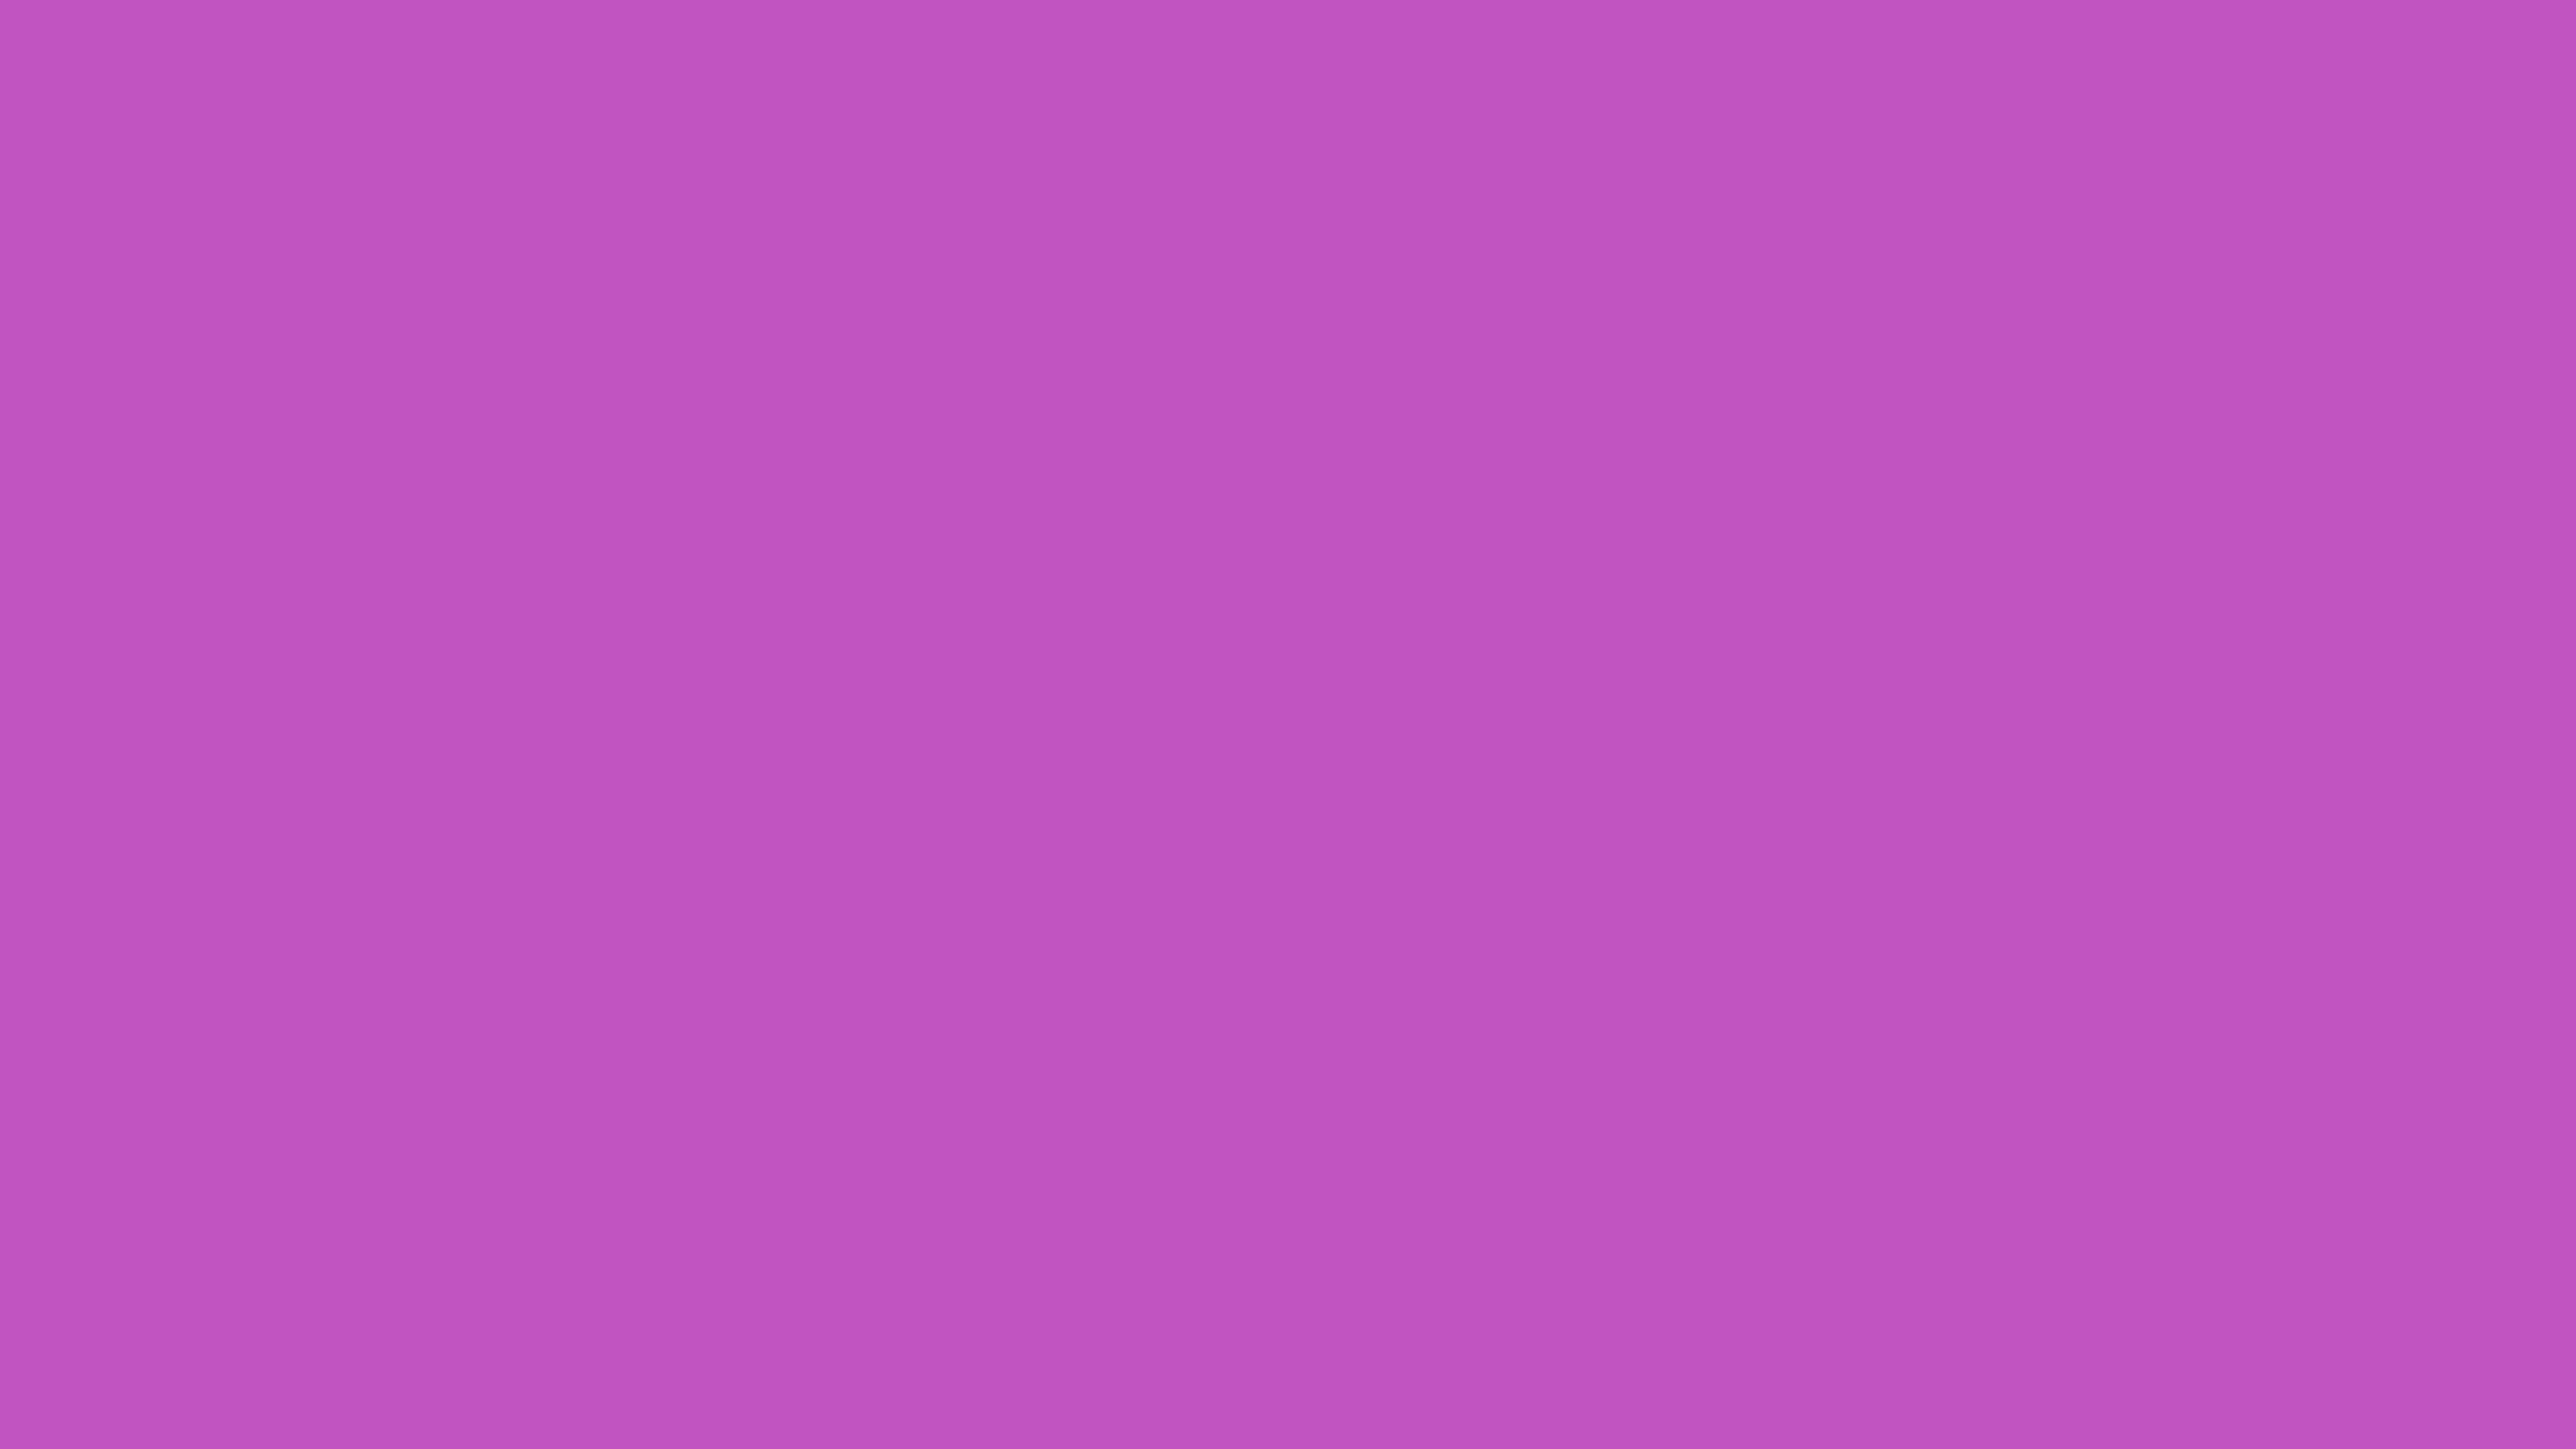 5120x2880 Deep Fuchsia Solid Color Background